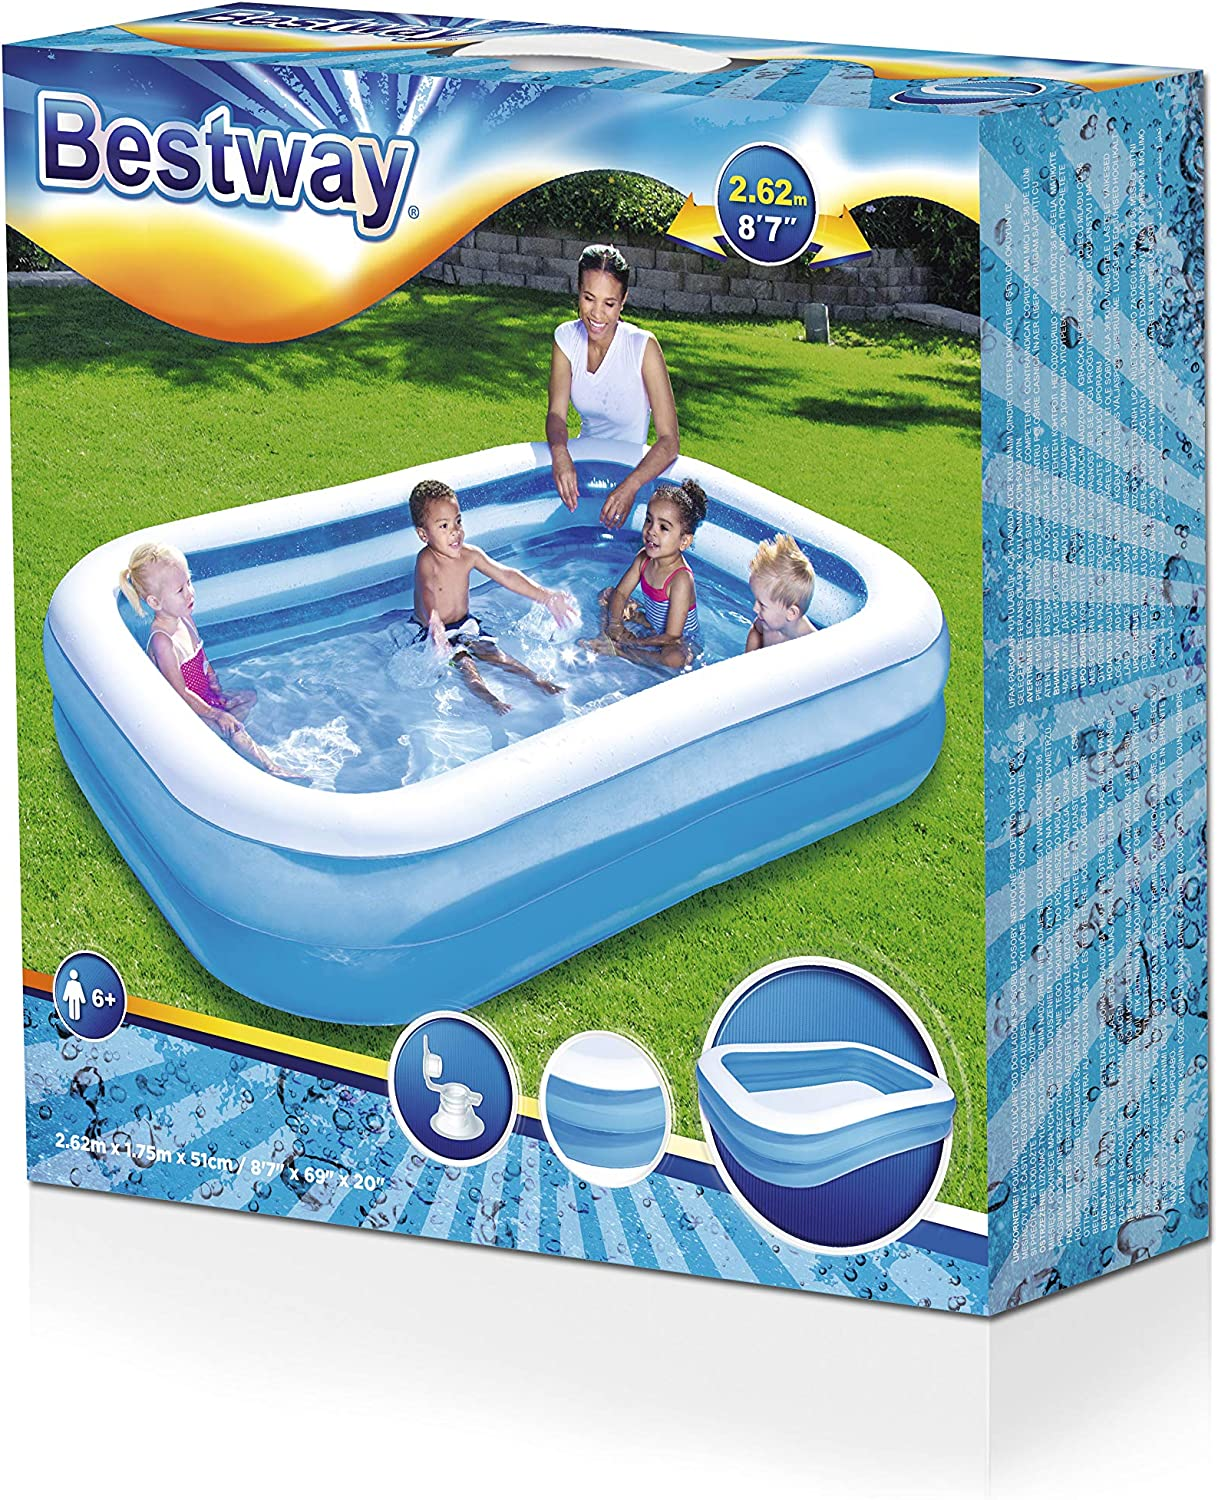 Bestway - Piscina Hinchable, Infantil, Azul , 262 x 175 x 51 cm: Bestway Family Pool: Amazon.es: Jardín